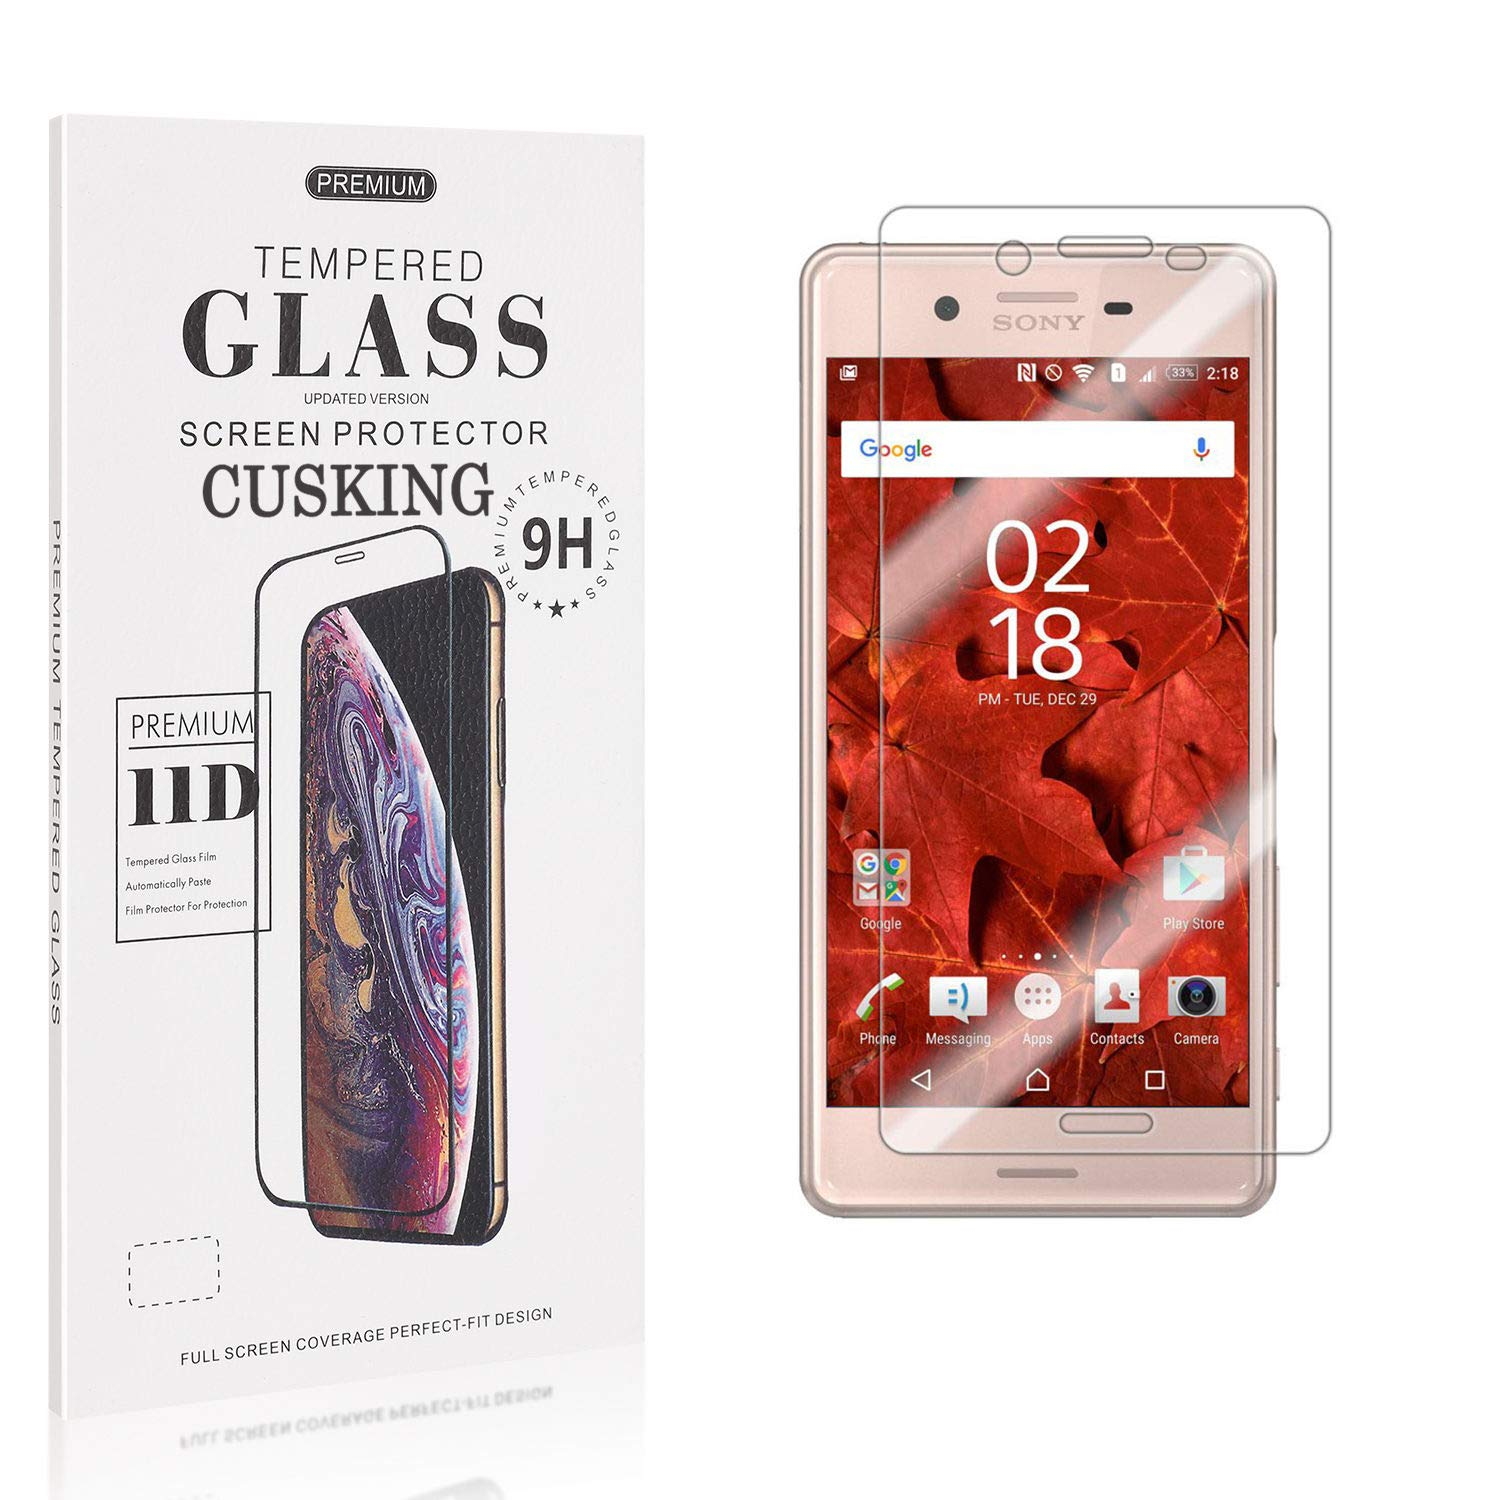 Screen Protector Compatible with Sony Xperia X Performance Bubble Free High Transparency Tempered Glass 1 Pack CUSKING 9H Hardness Screen Protector for Sony Xperia X Performance